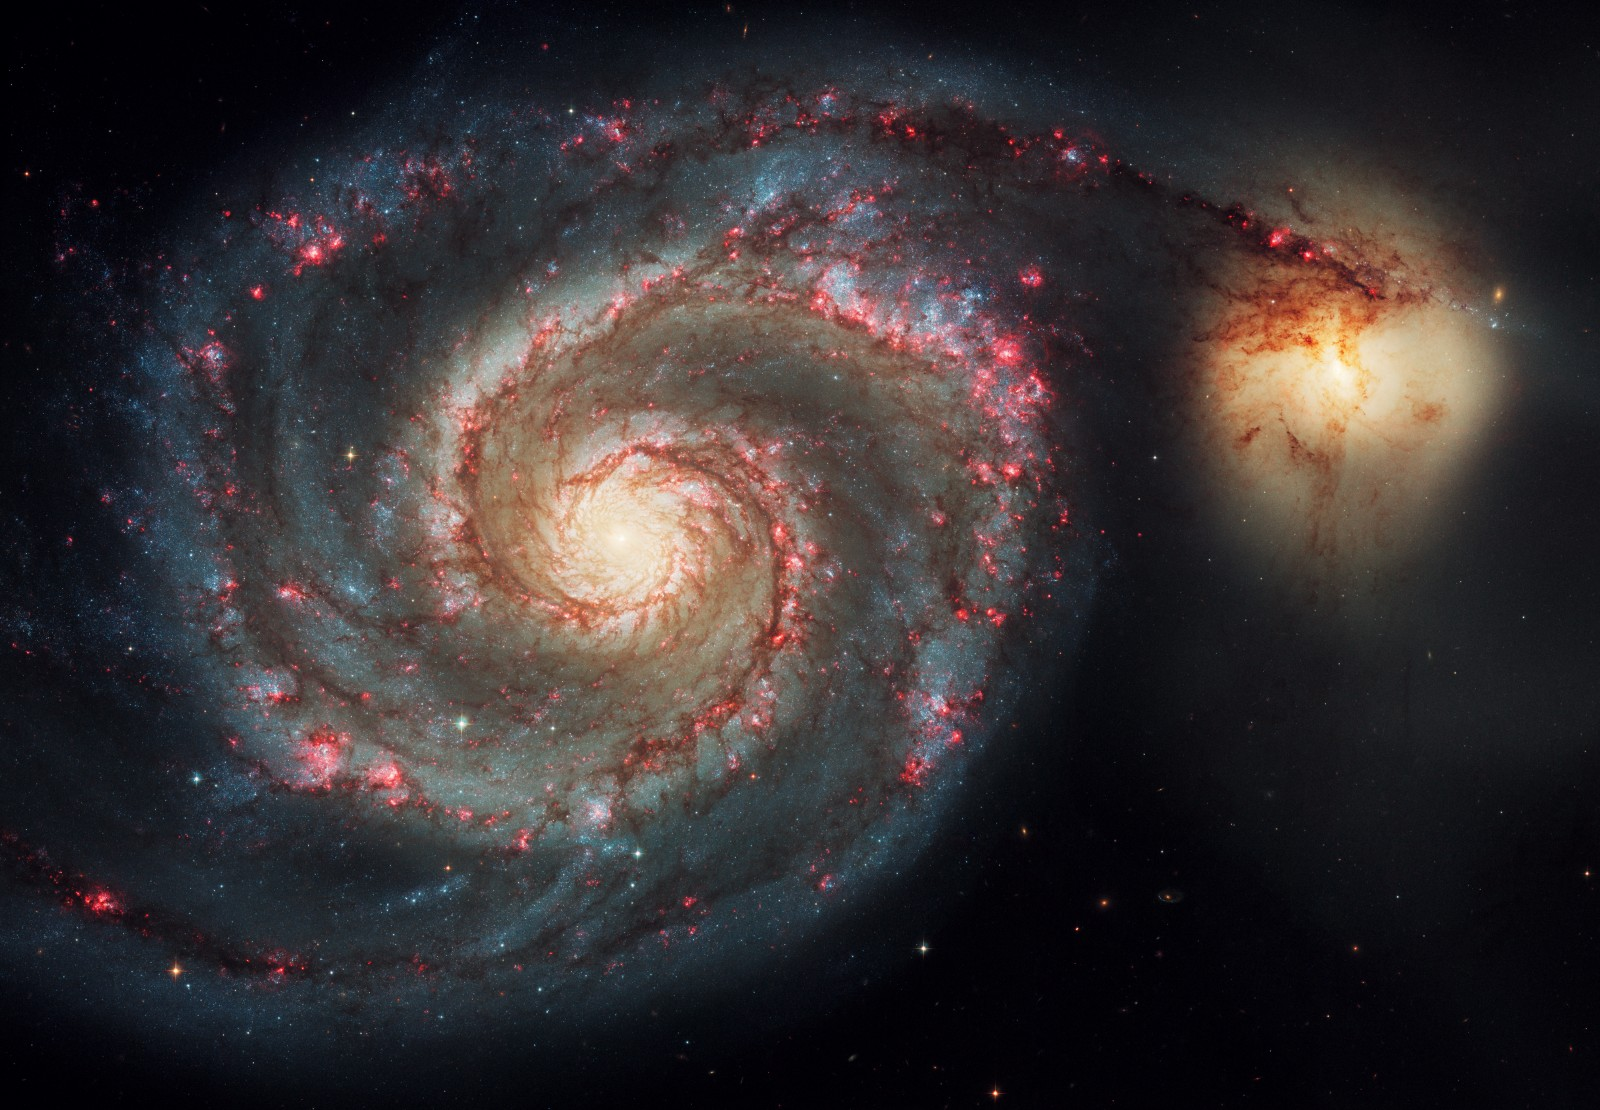 The exquisite spiral structure is more clearly seen in this classic Hubble image of the Whirlpool Galaxy, M51, which is interacting gravitationally with a galaxy to its right. Spiral galaxies like these display blue curving arms made up of young stars, peppered with bright pink star-birth regions. A yellowish central bulge contains mostly older stars and massive black holes lurk in the centre of many.